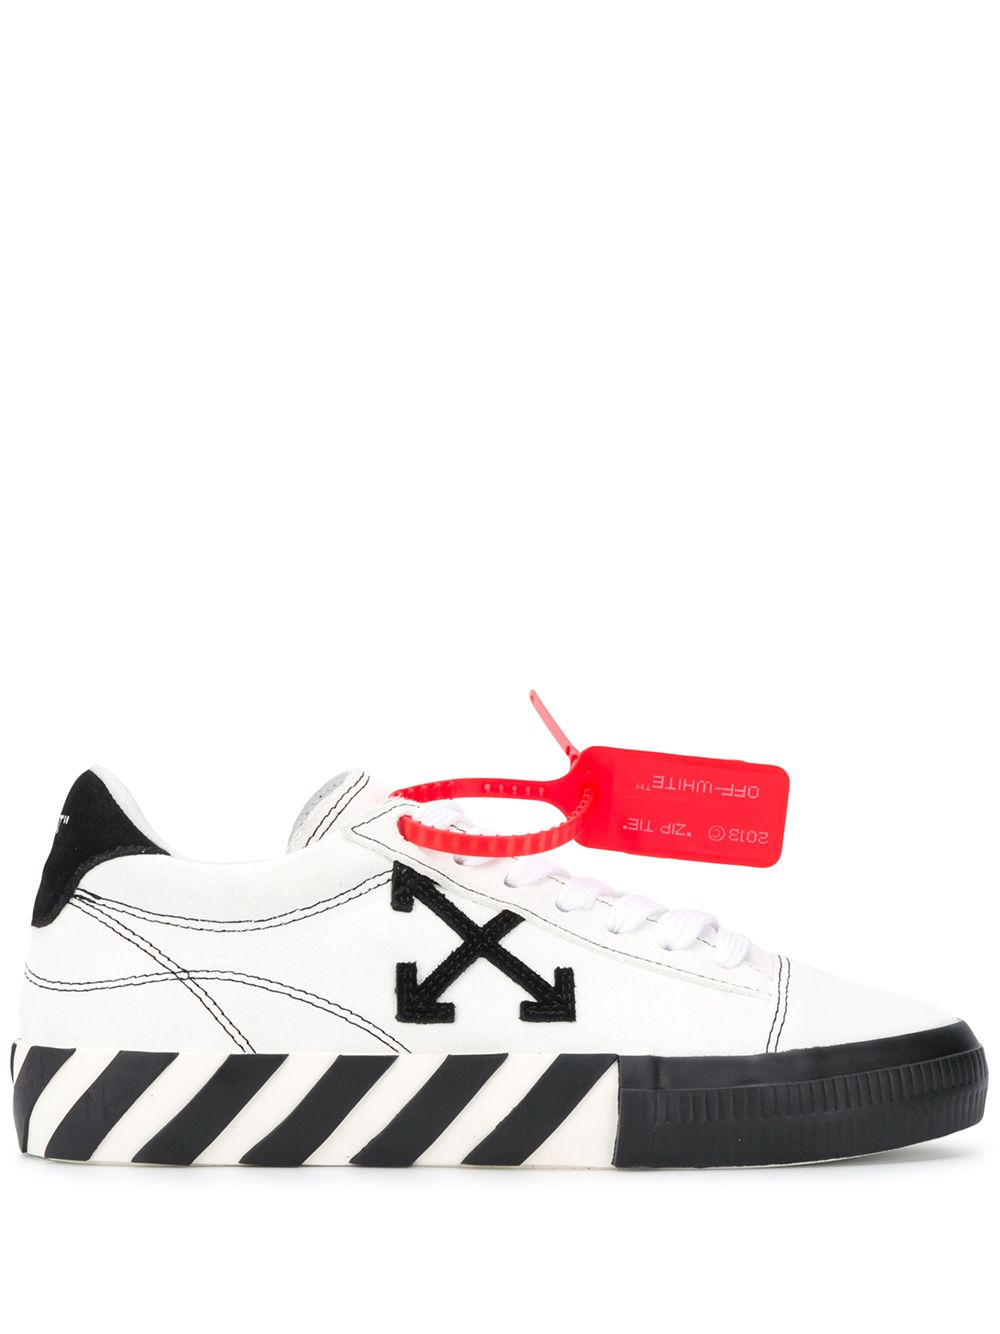 OFF-WHITE Contrast Stitched Low Vulcanized Sneakers White